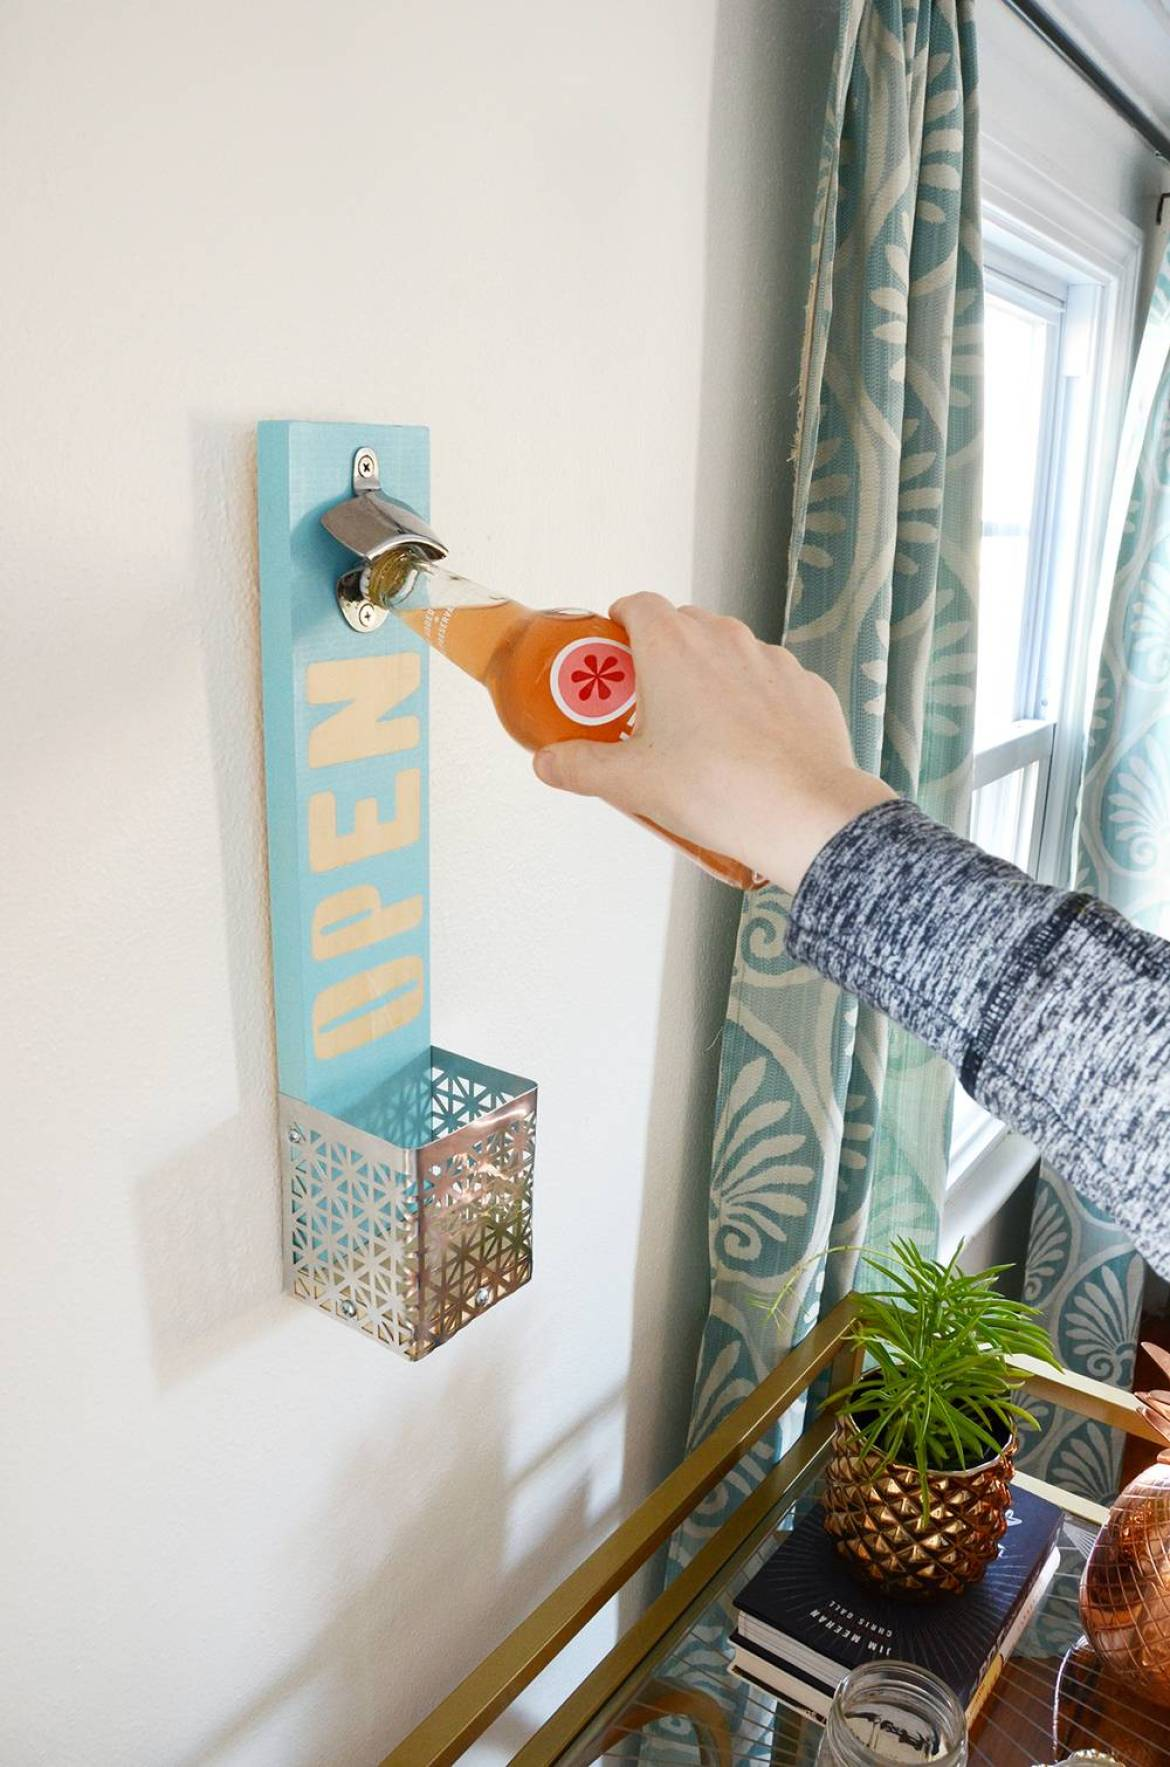 Finished wall mounted bottle opener - used for taking caps off glass bottles